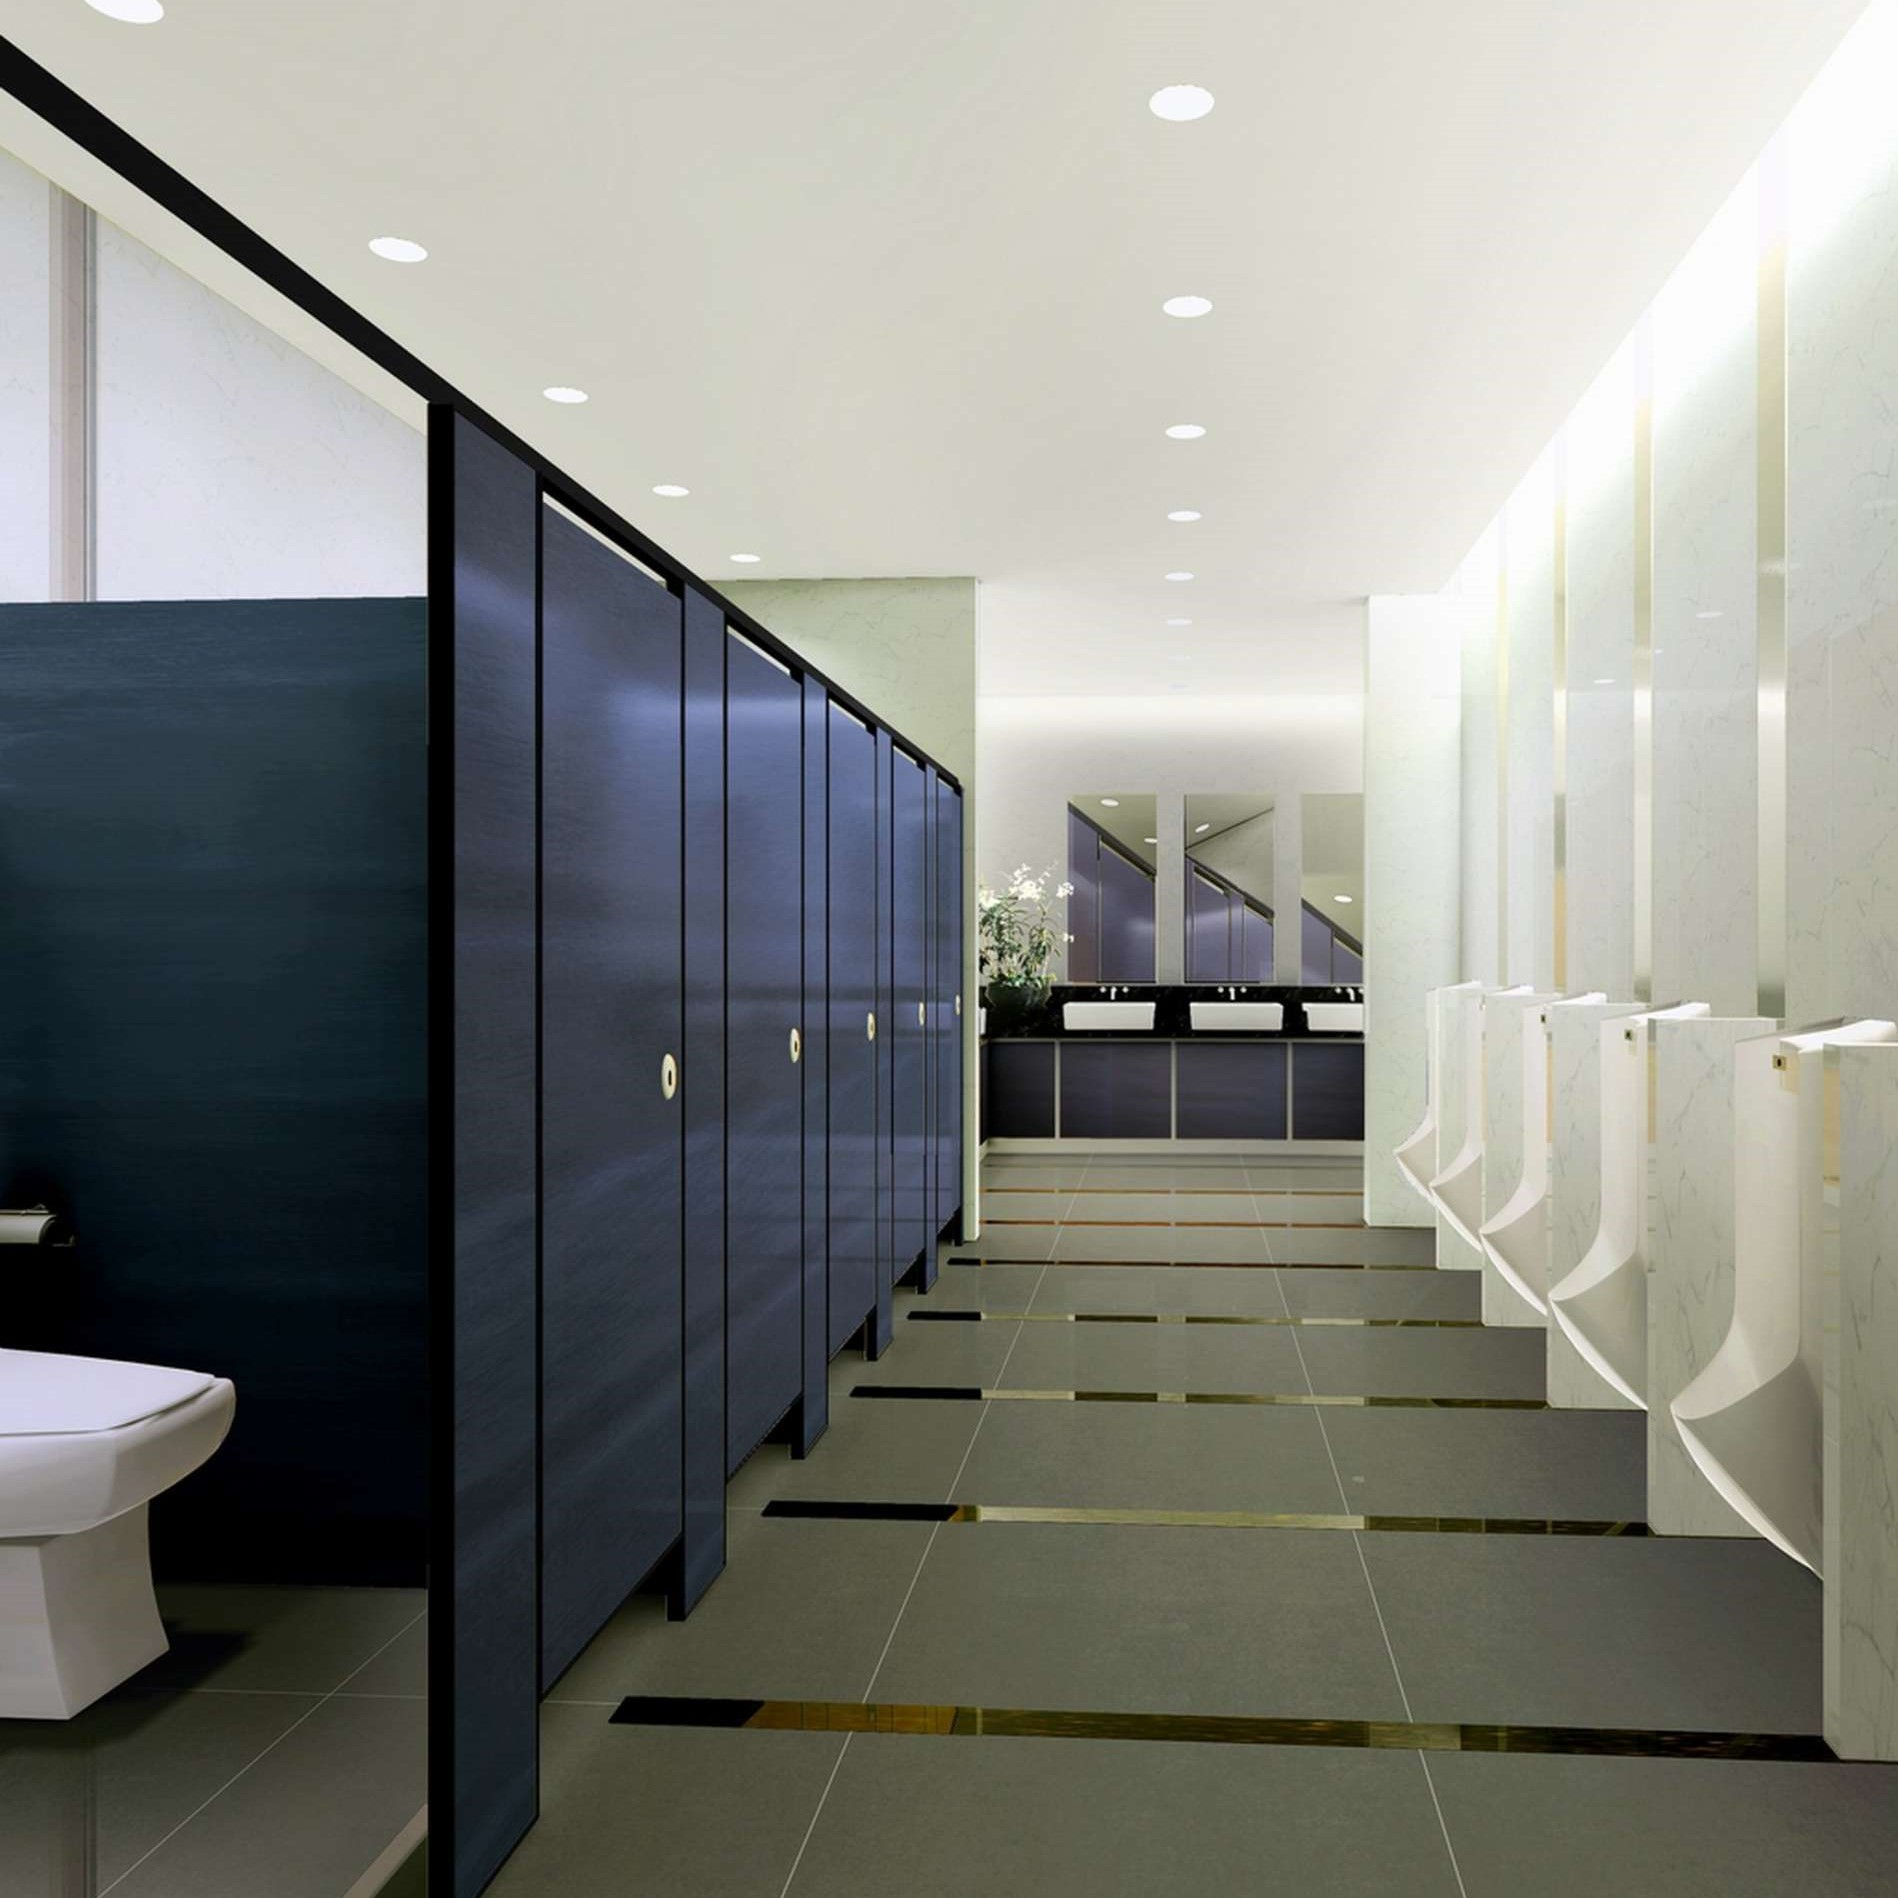 HPL toilet partitions with Stainless Steel accessories made in China